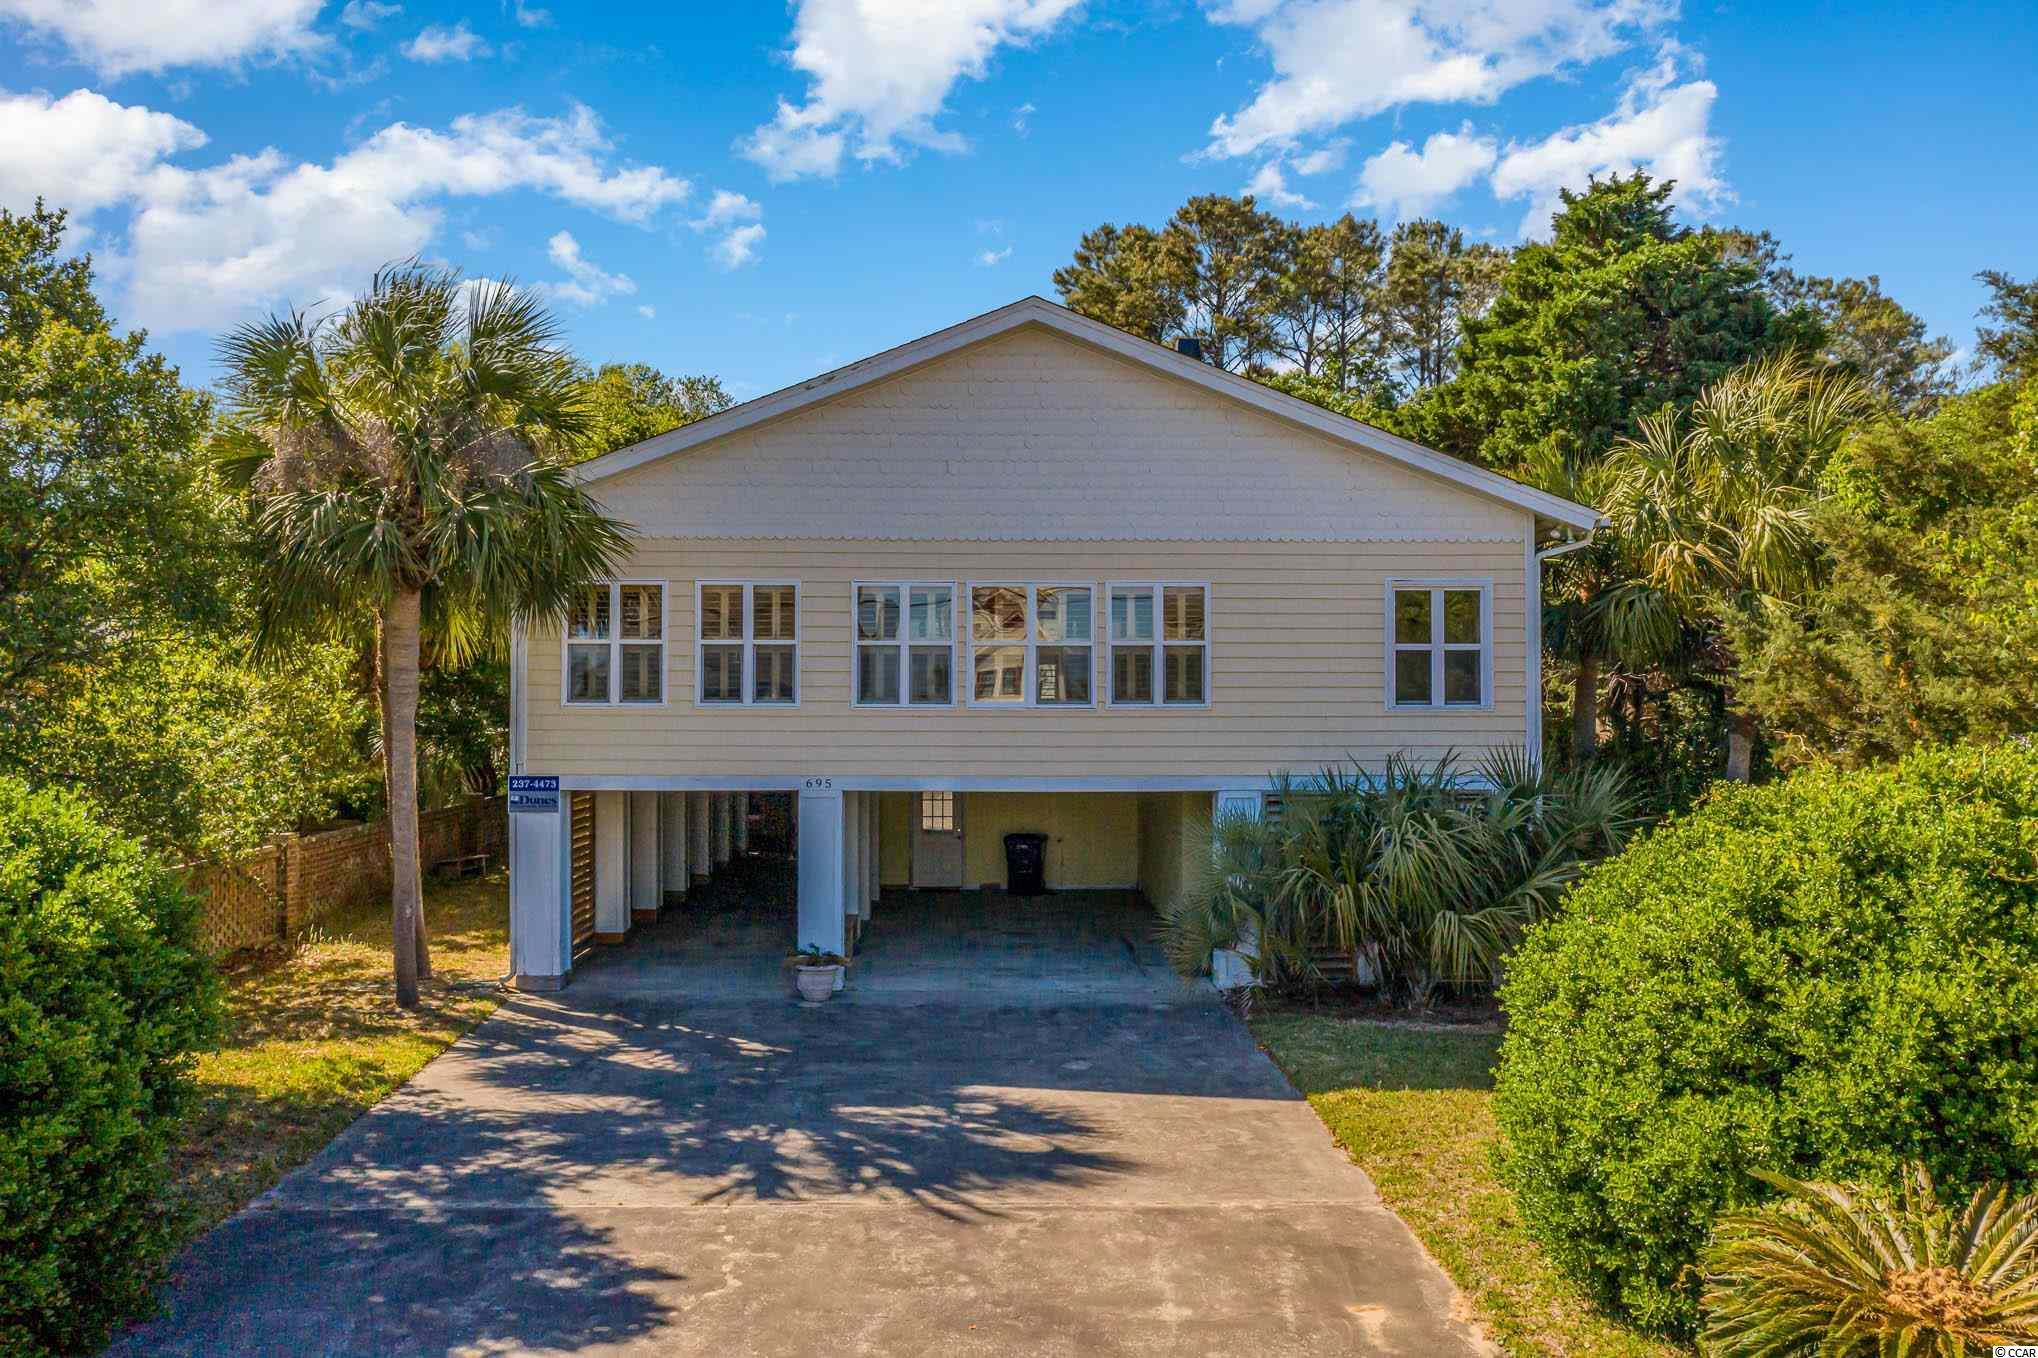 Huge 3 story home just steps to the Atlantic Ocean in coveted Pawleys Island! Enough room for your entire family to visit, with 5 bedrooms and 4 full bathrooms. large deck coming of the home, covered outdoor shower, tons of parking, and you're close to all major shopping & attractions without being in the middle of busy Myrtle Beach. This property is truly a little slice of heaven. Call today for more information or to schedule a showing.